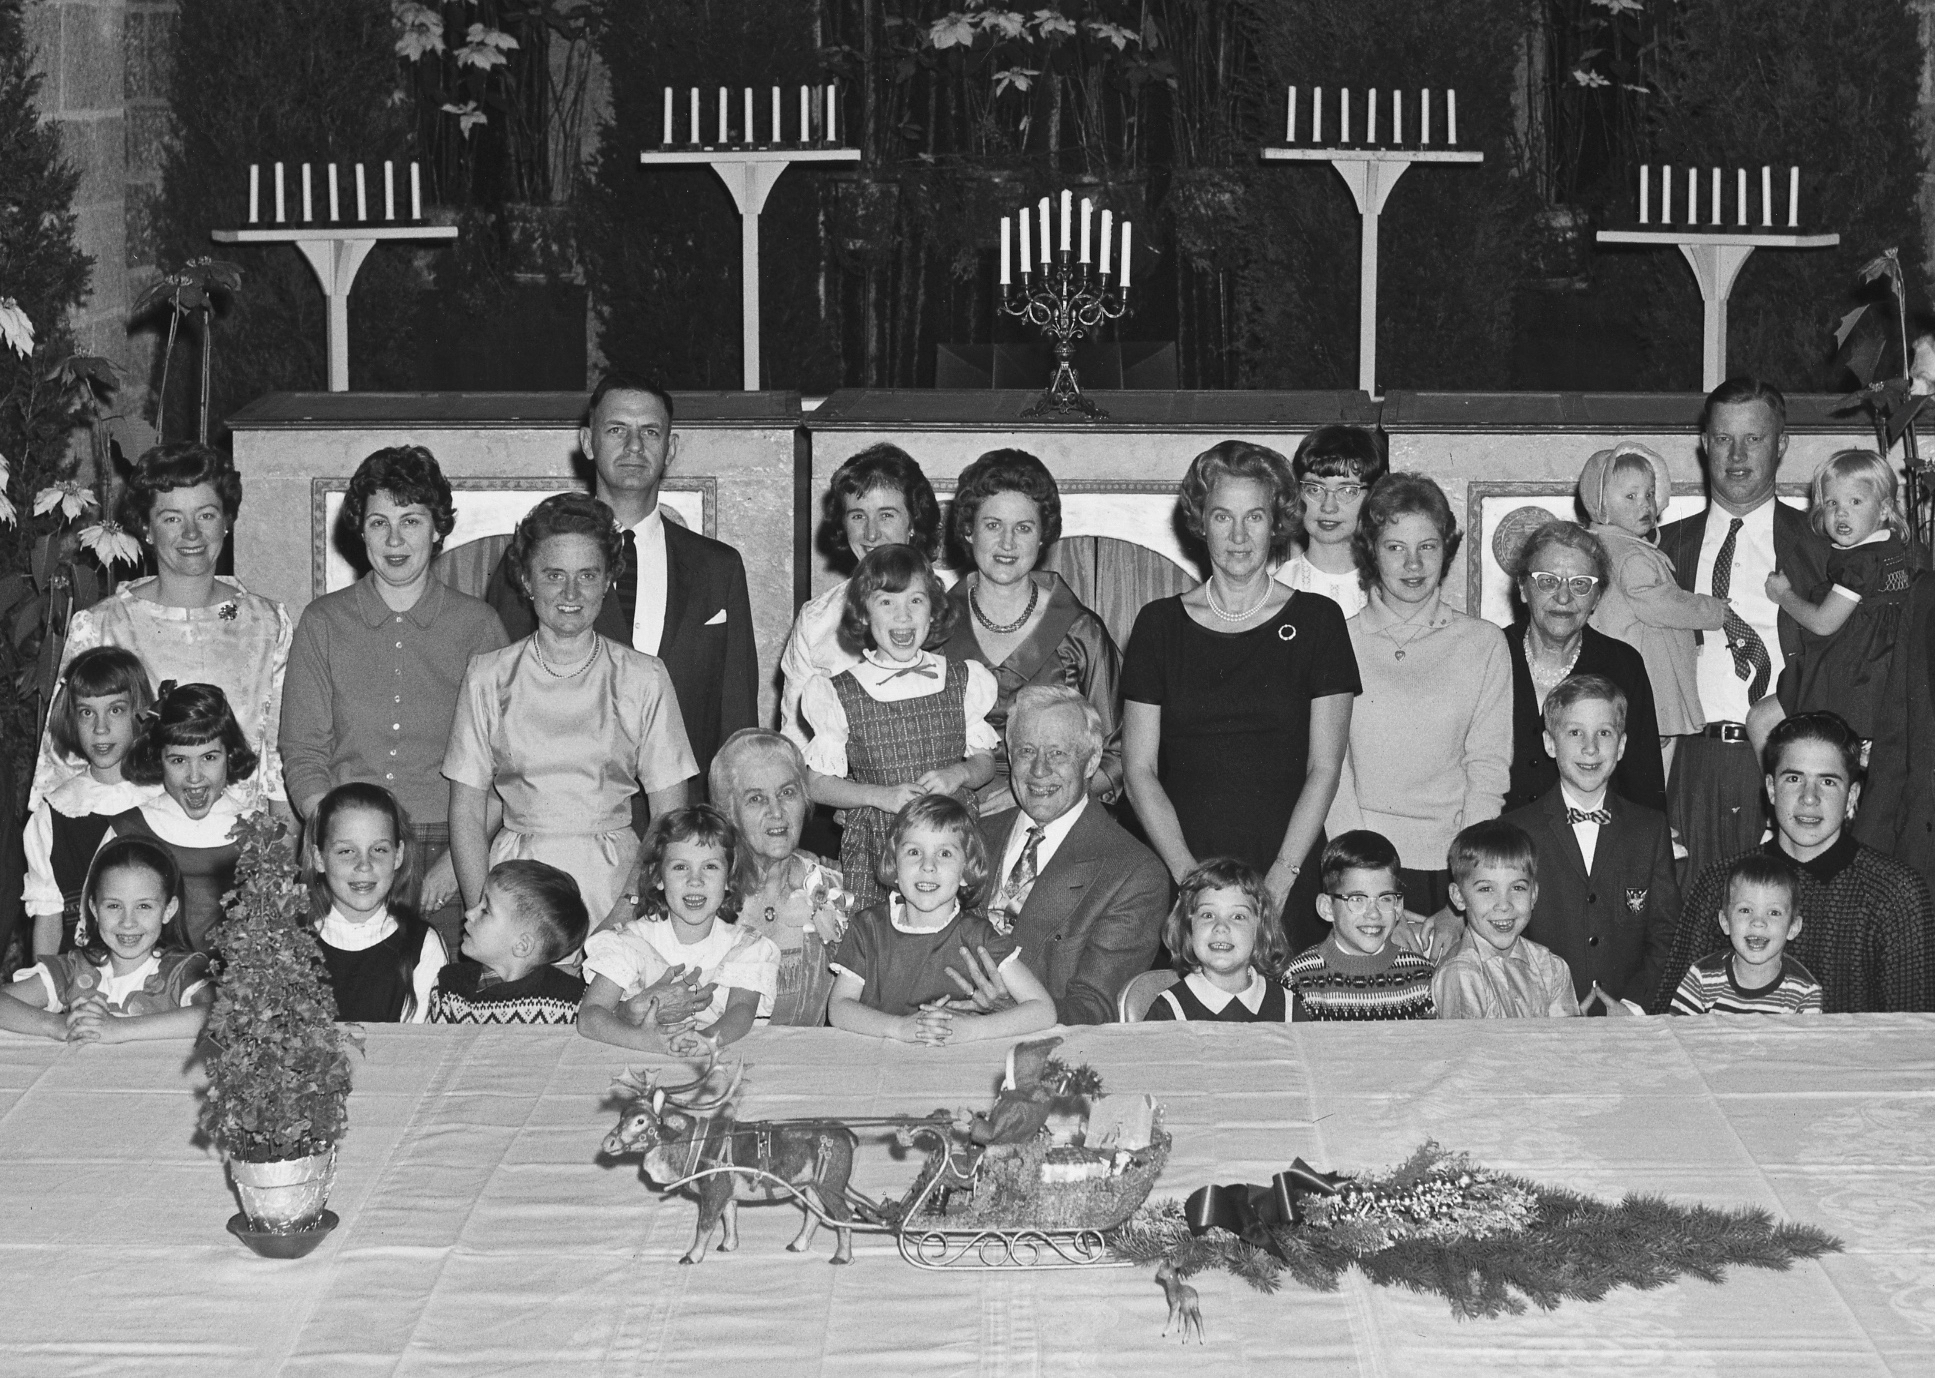 Raymond and Mildred Pitcairn pose with children and grandchildren on Christmas Day (1961) in Glencairn's Upper Hall. Santa and his reindeer are the centerpiece of the holiday table.